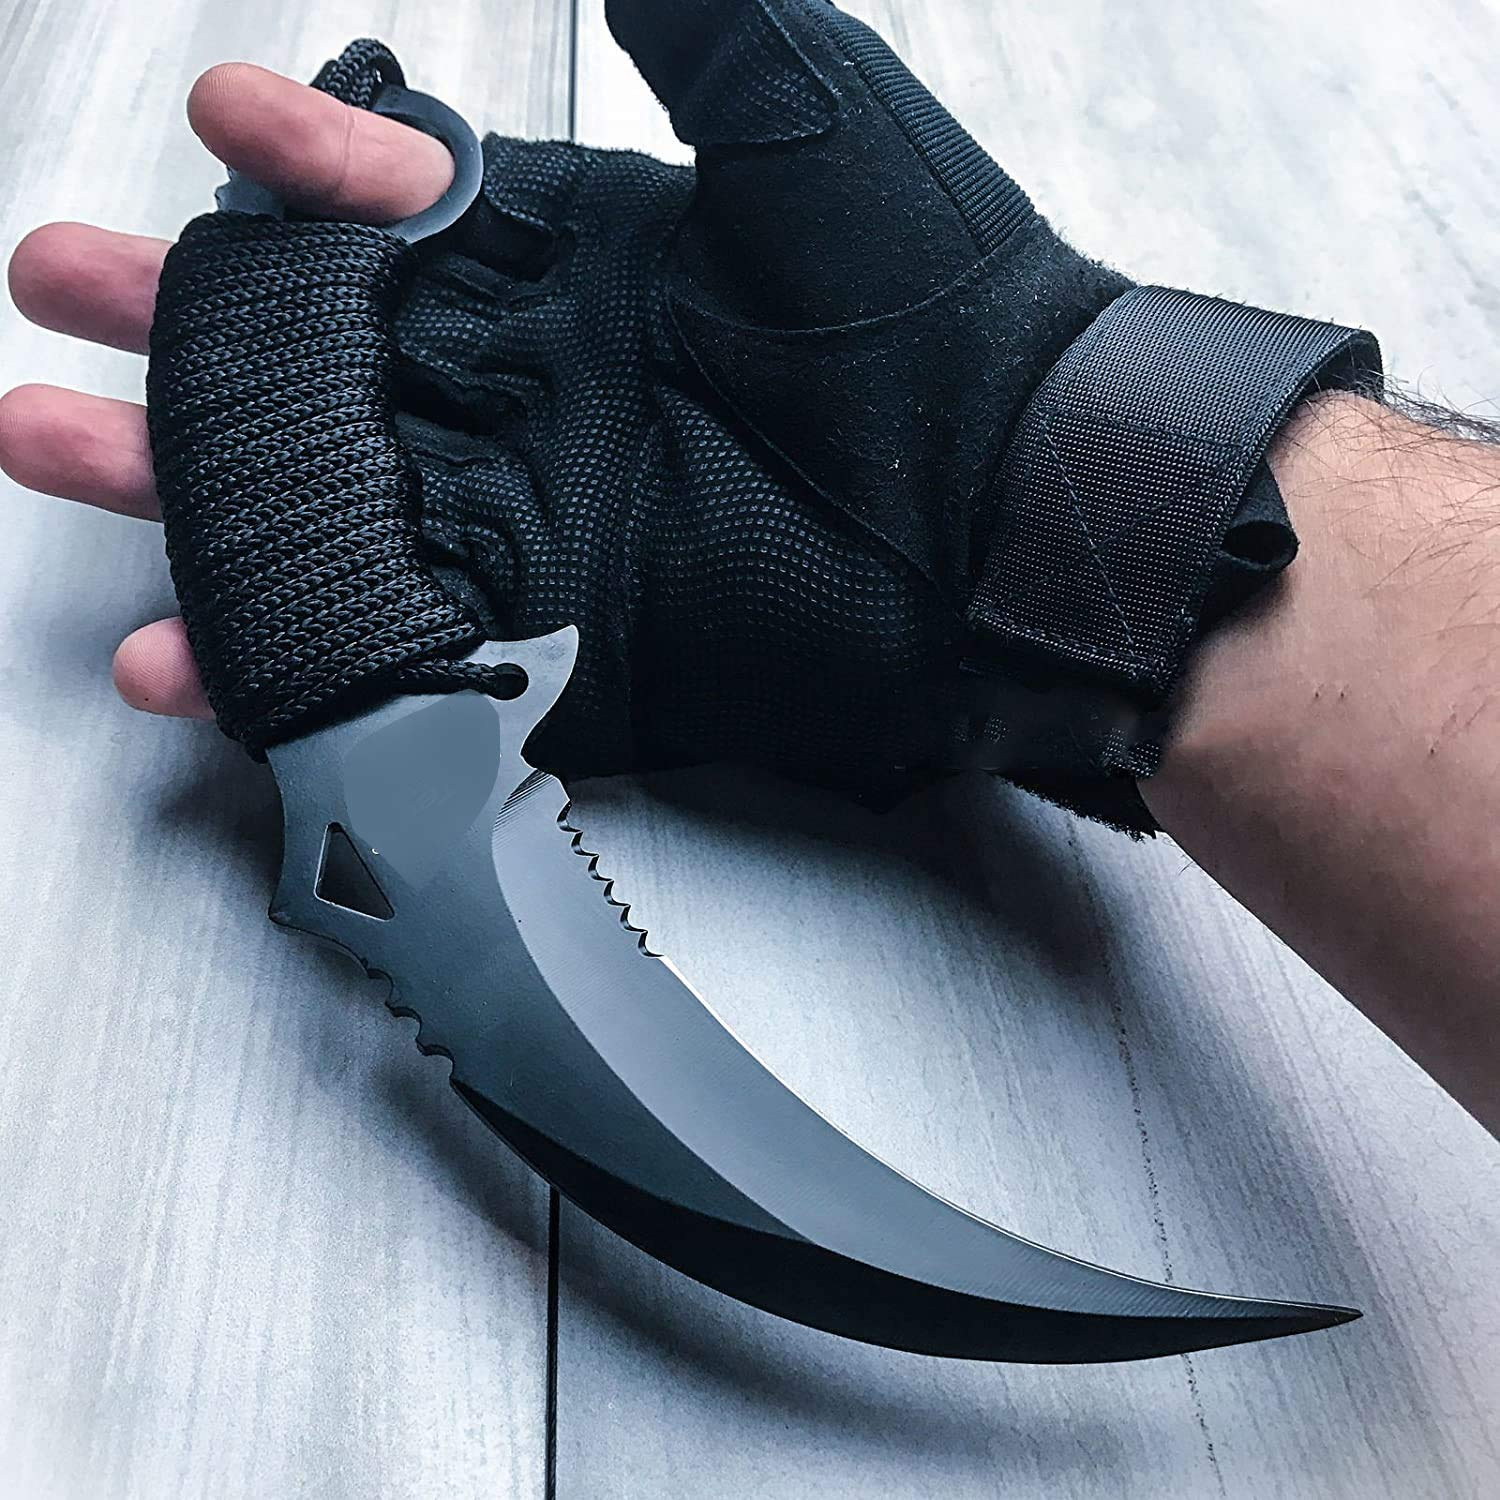 """KCHEX 10"""" Tactical Combat KARAMBIT Knife Survival Hunting Bowie Fixed Blade"""